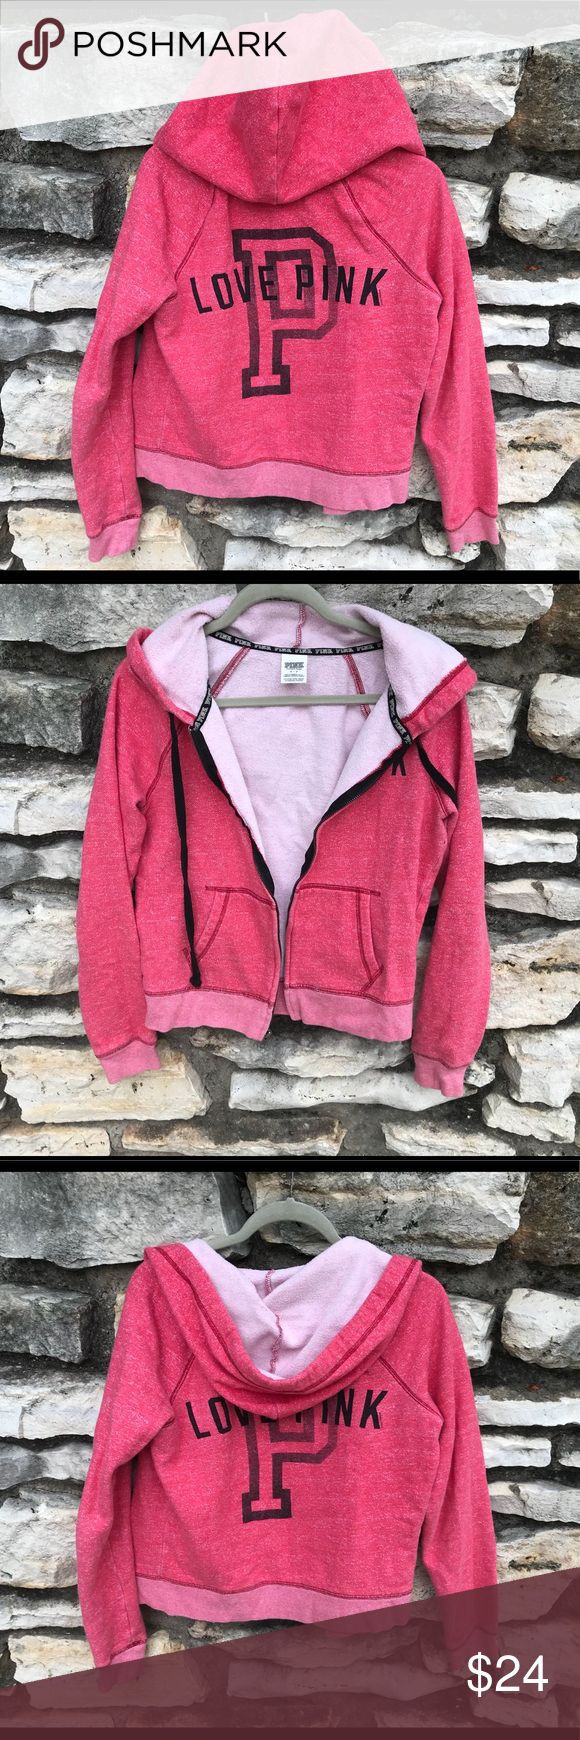 Victoria's Secret PINK hoddie zip up size small PINK hoodie size small petite. Pink/Peach color, black print on the back. Please note that color might be slightly different from the picture. Warm hoodie. Has some minor ware. No tear or stains. I can't model bc I am currently size L. PINK Victoria's Secret Other